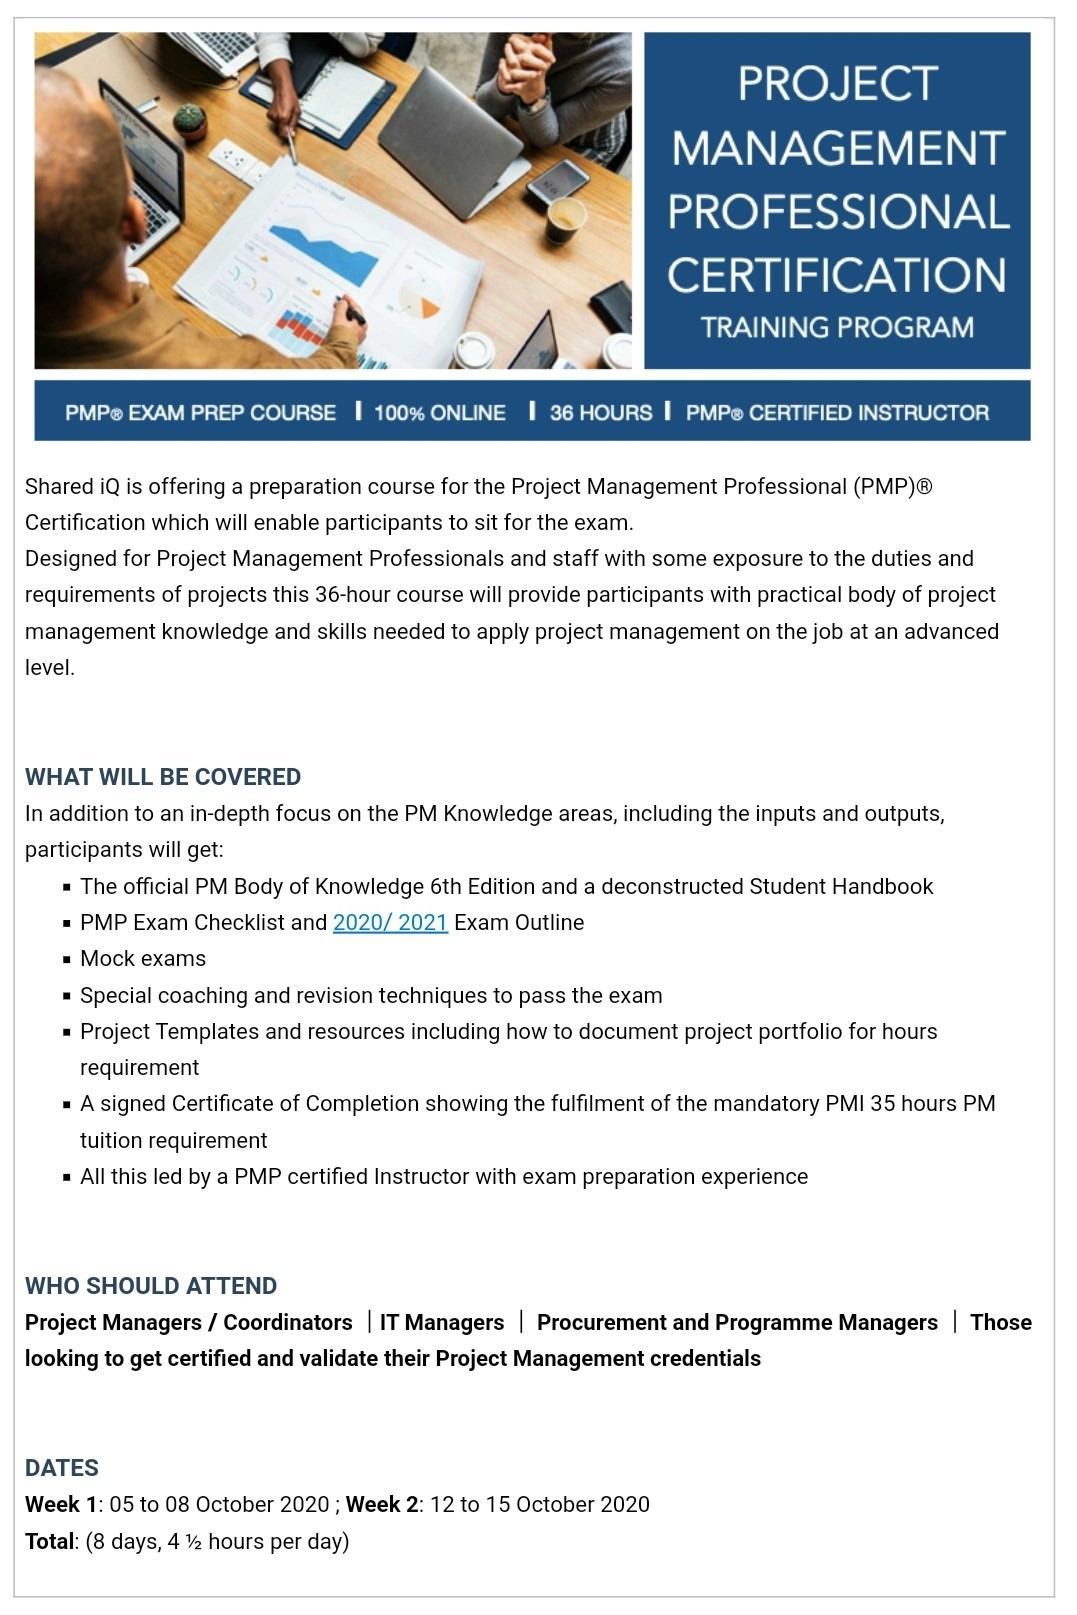 PMP Exam Preparation Certification Course on Oct 05, 08:30@Online - Buy tickets and Get information on www.sharediq.org